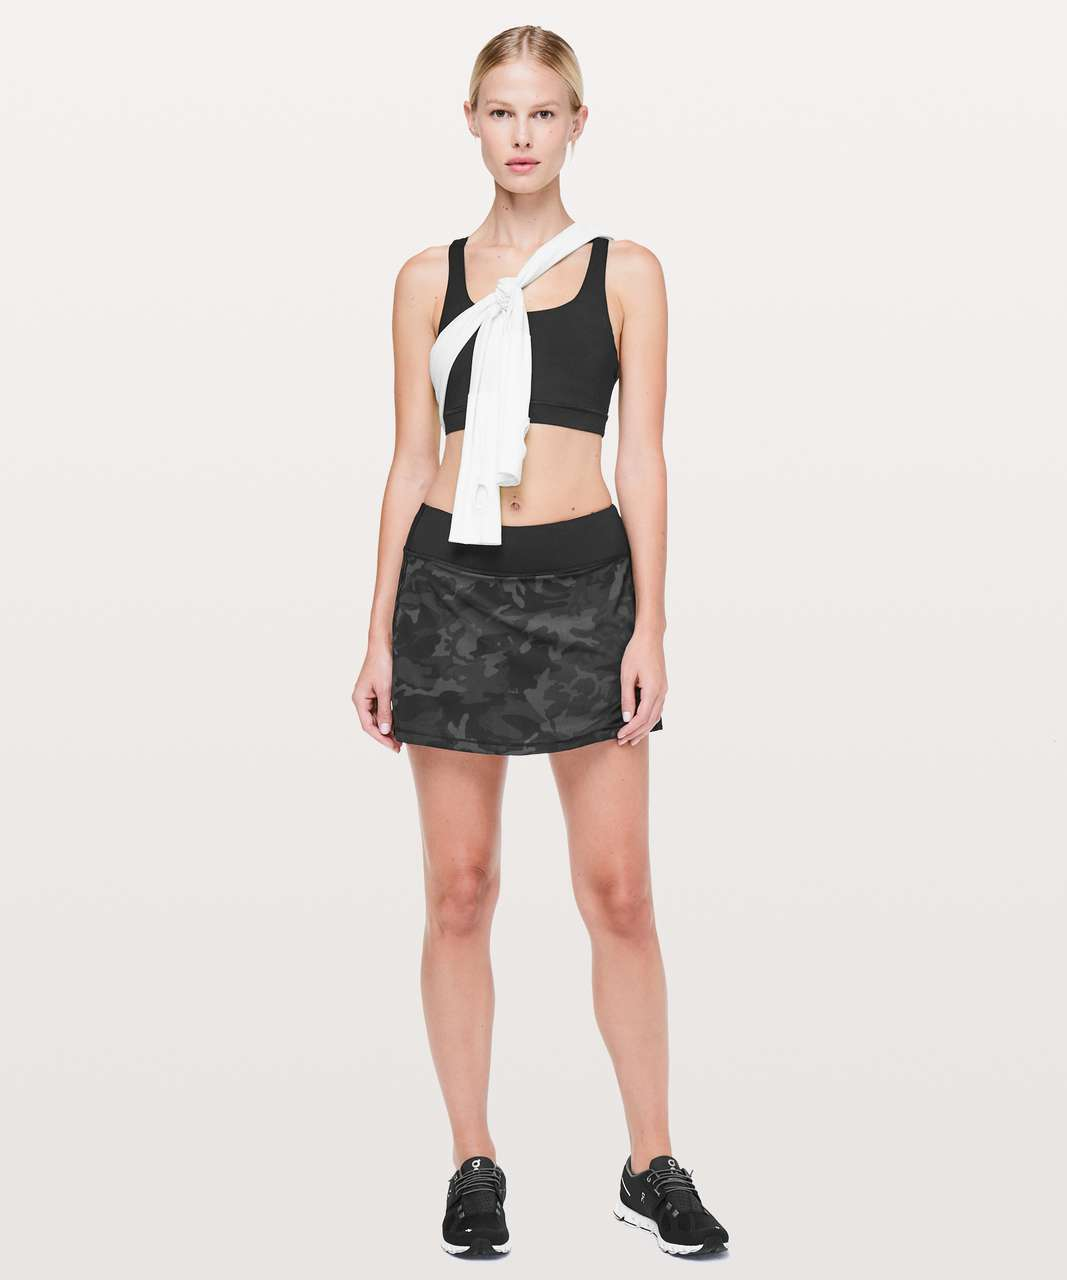 Lululemon Pace Rival Skirt (Tall) *No Panels - Incognito Camo Multi Grey / Black